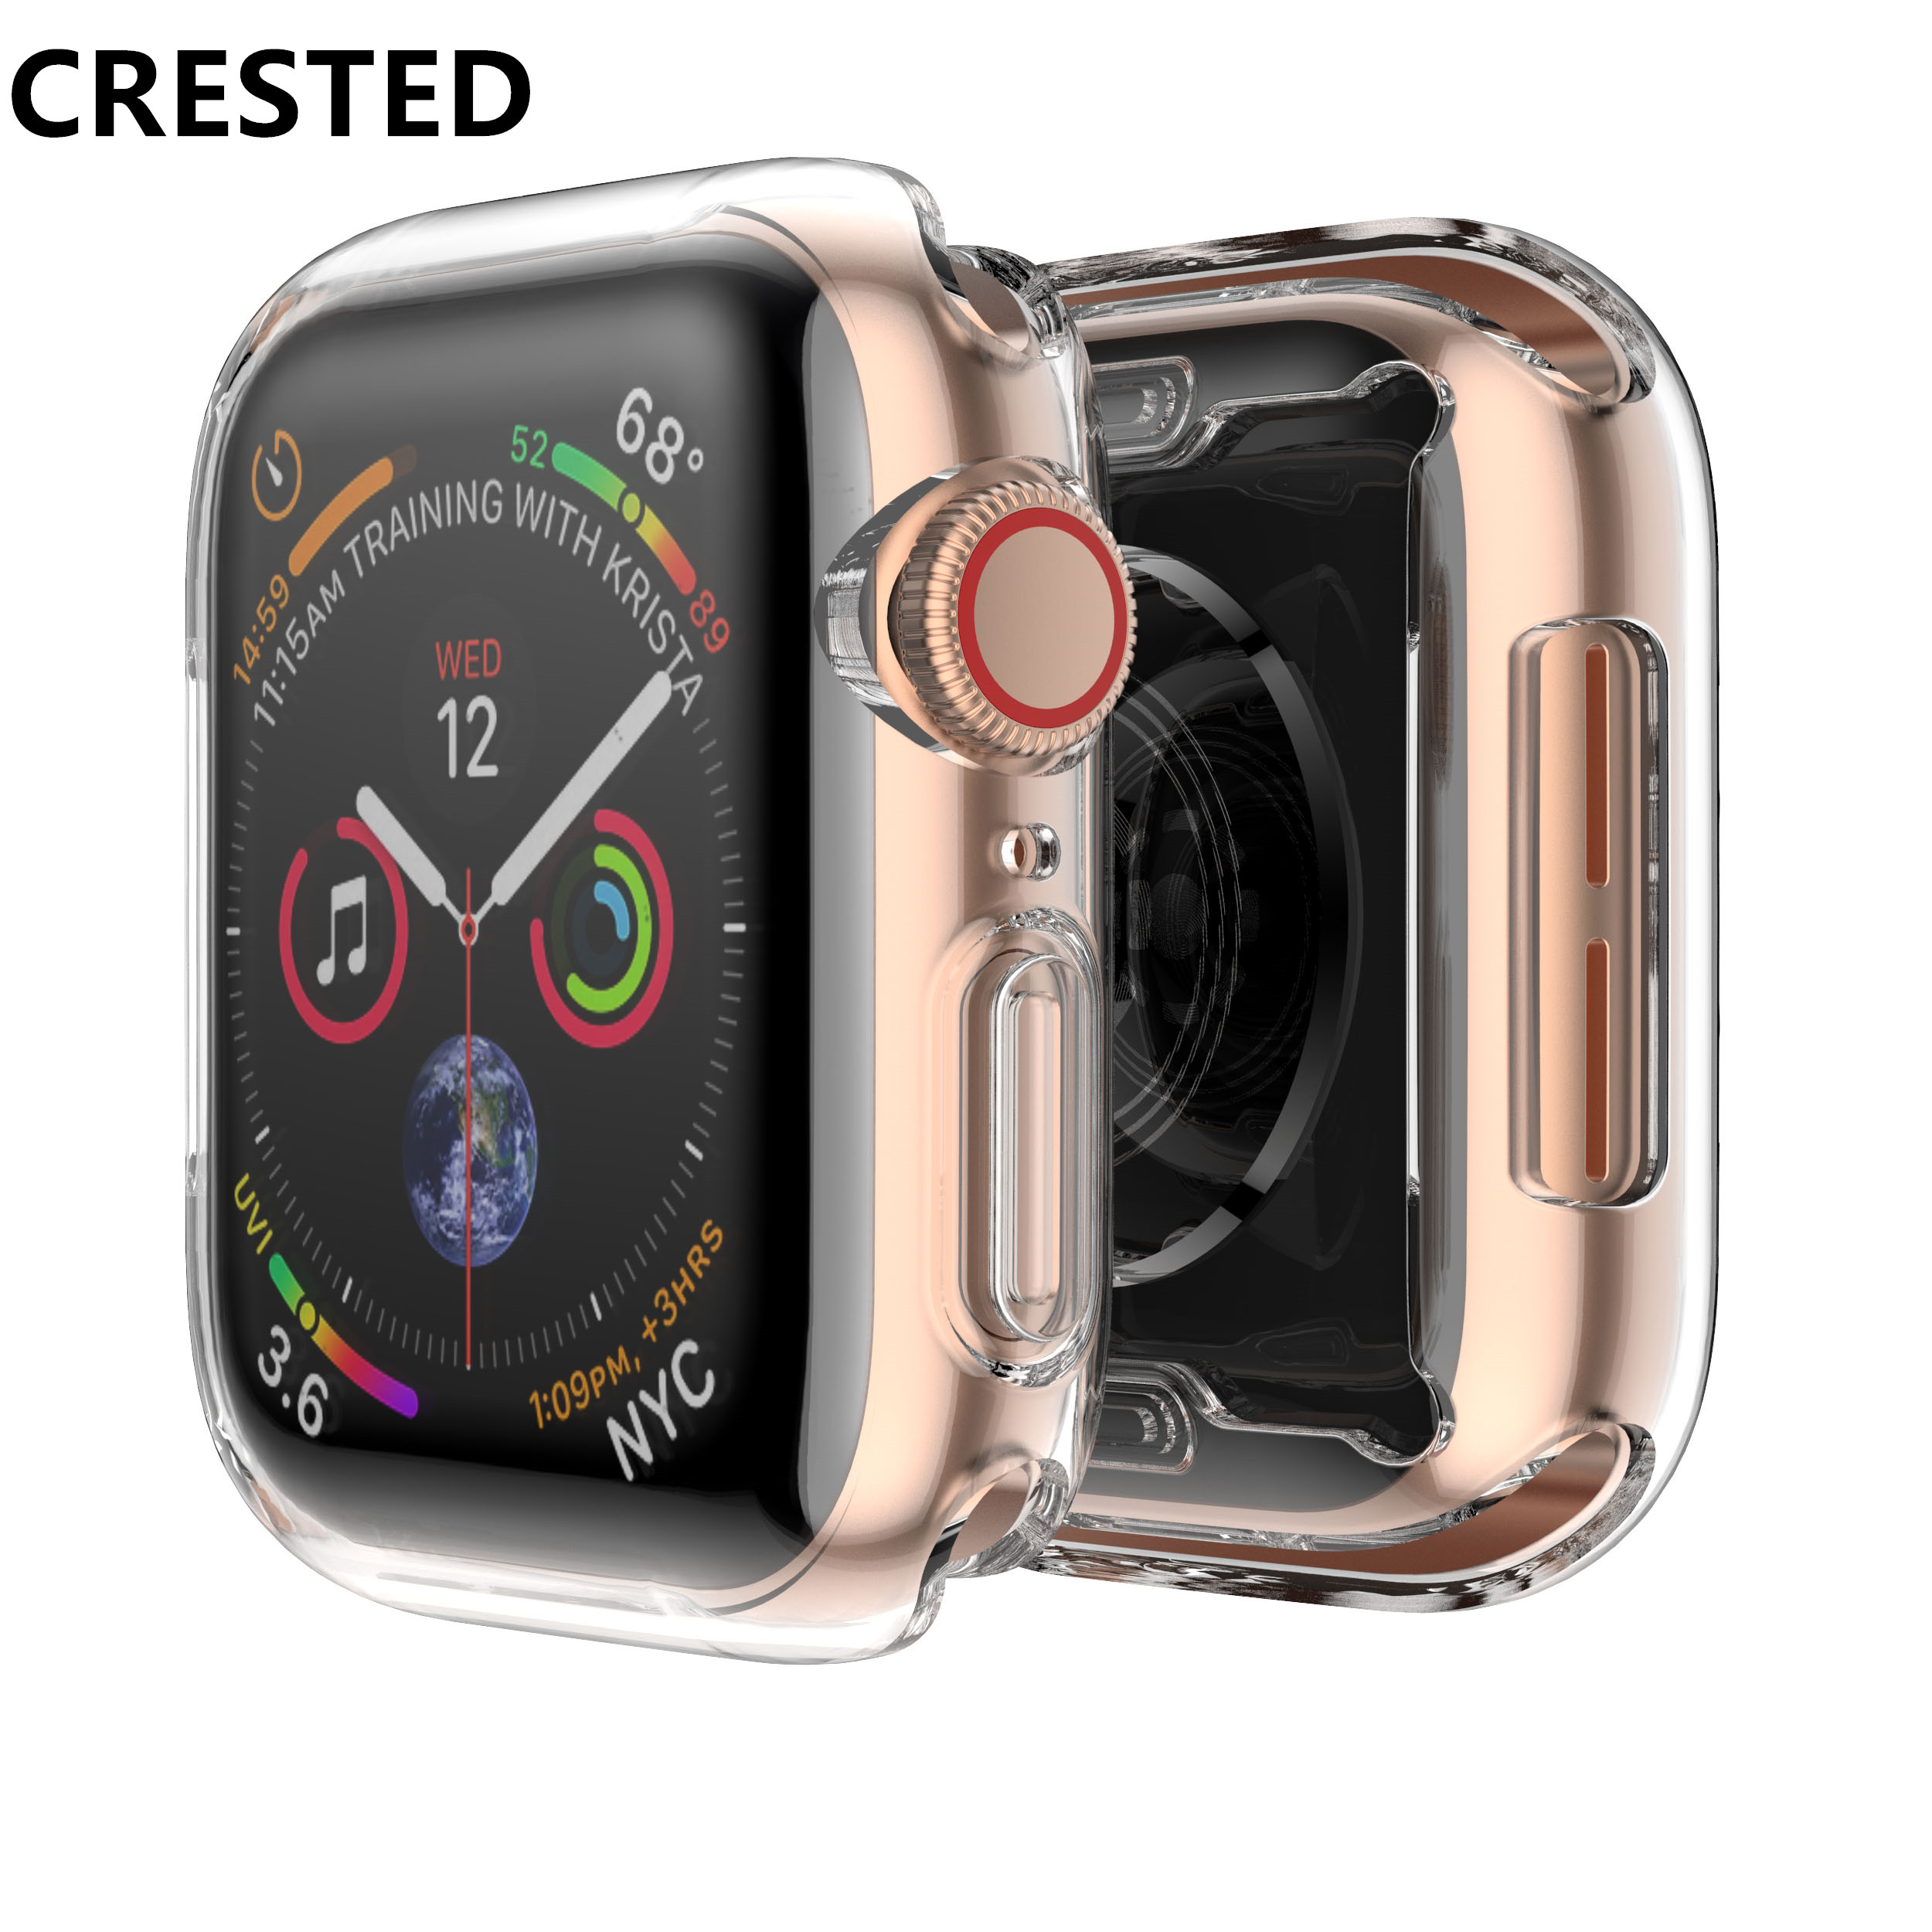 CRESTED Silicone Cover case For Apple Watch band 4 44mm 40mm screen protector iwatch 3 2 1 42mm/38mm soft Ultra-thin Clear frameCRESTED Silicone Cover case For Apple Watch band 4 44mm 40mm screen protector iwatch 3 2 1 42mm/38mm soft Ultra-thin Clear frame